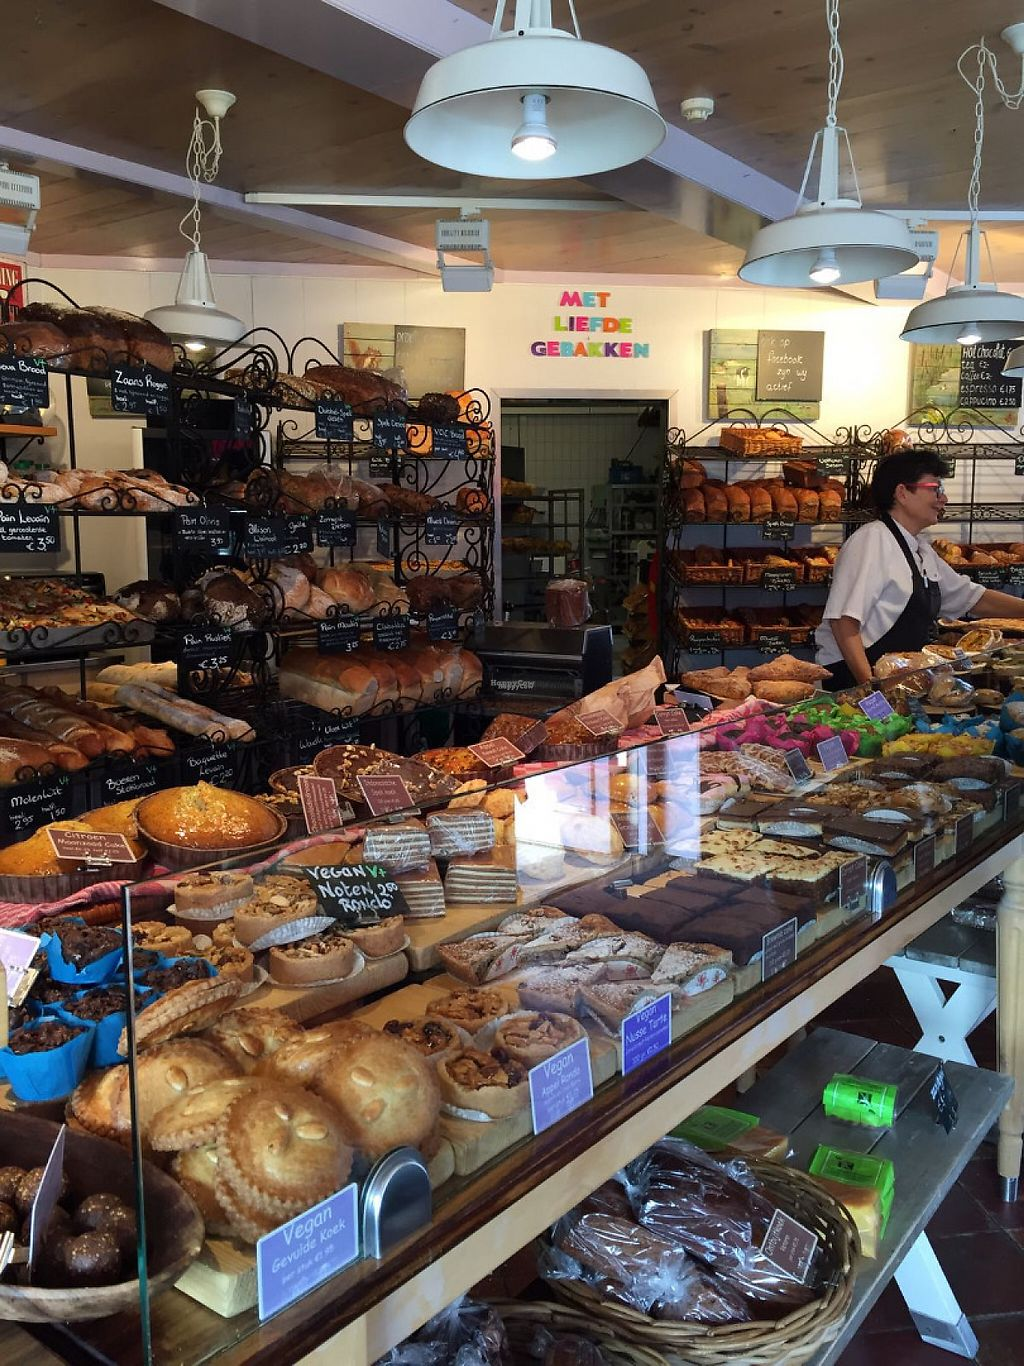 """Photo of Het Zaanse Bakkertje  by <a href=""""/members/profile/Layra"""">Layra</a> <br/>Inside the bakery <br/> March 20, 2017  - <a href='/contact/abuse/image/70817/238680'>Report</a>"""